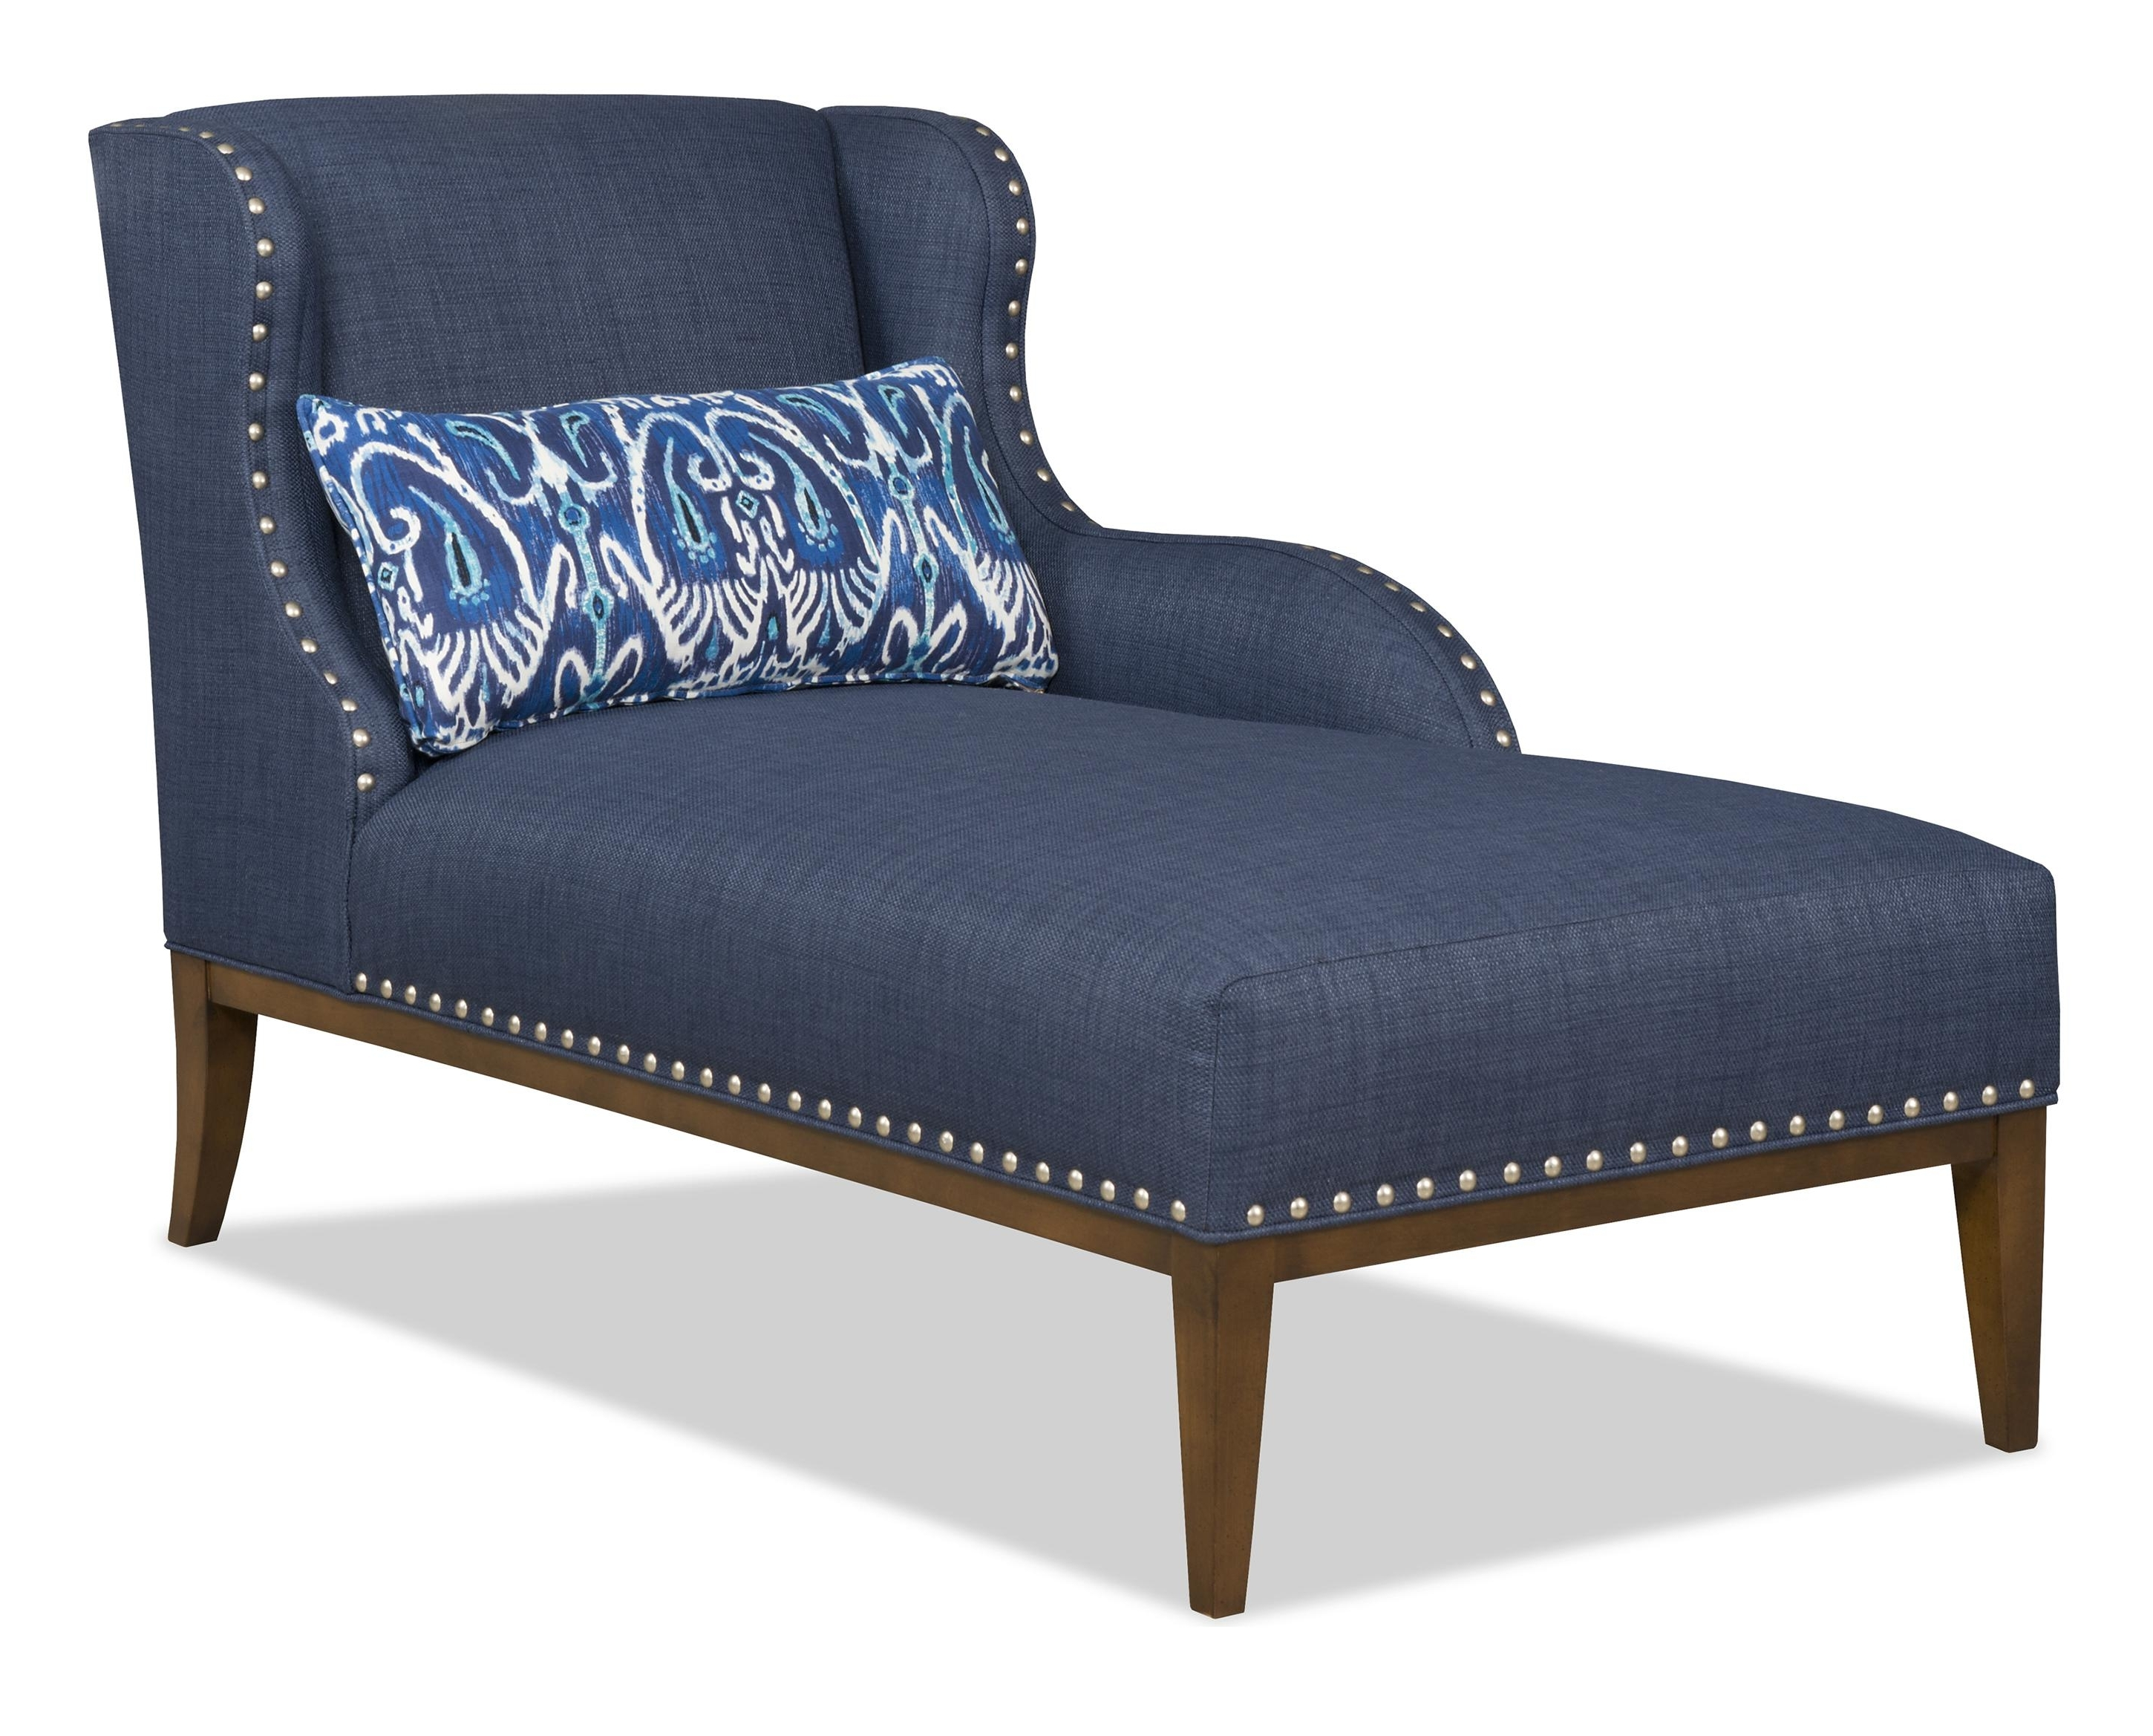 Most Recently Released Transitional Laf One Arm Chaise With Nailhead Trimsam Moore Pertaining To One Arm Chaises (View 9 of 15)